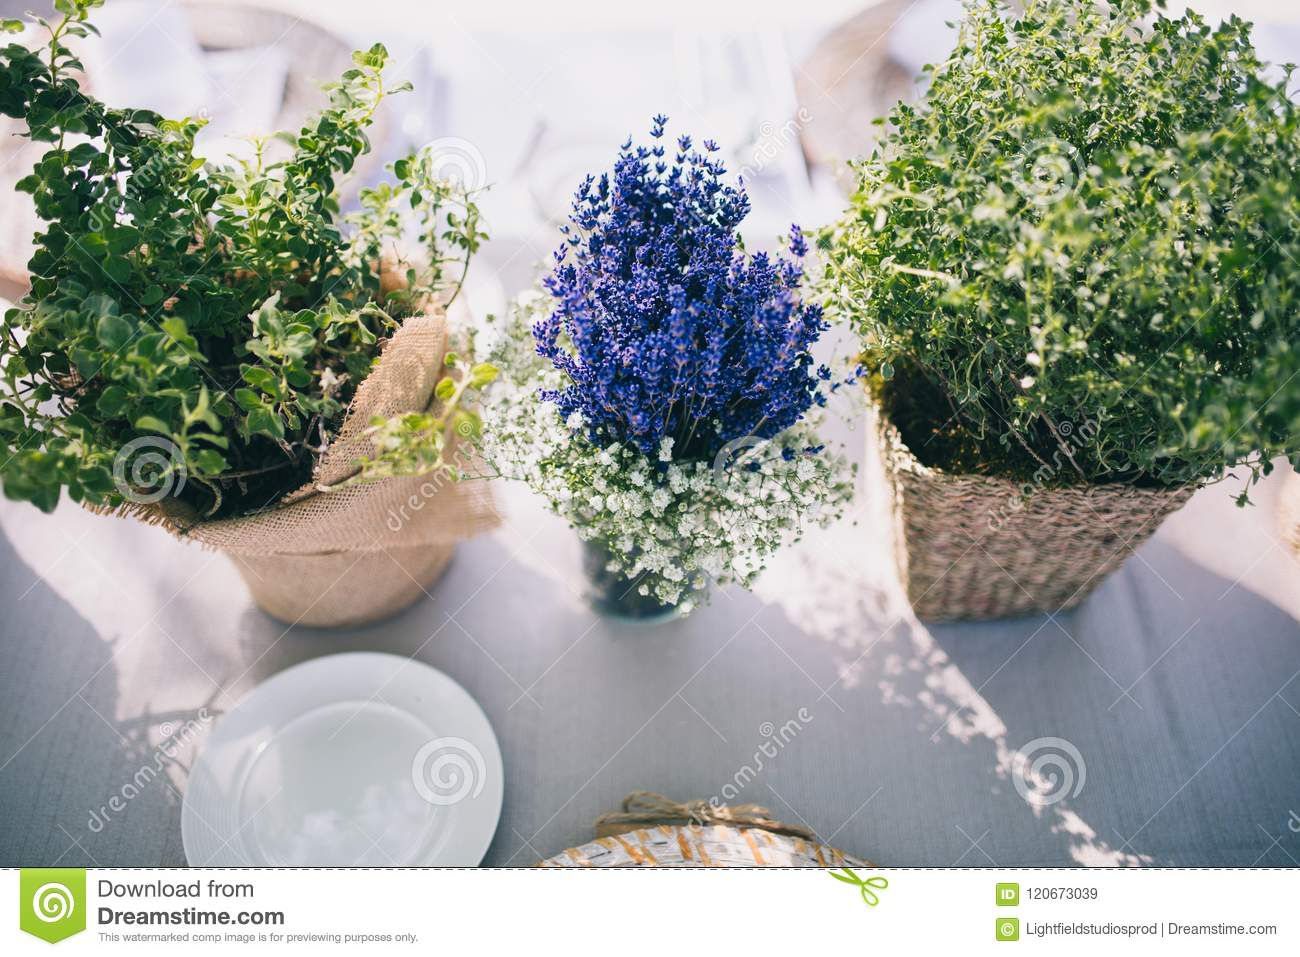 flat lay with green plants and lavender plant in flowerpots on tabletop